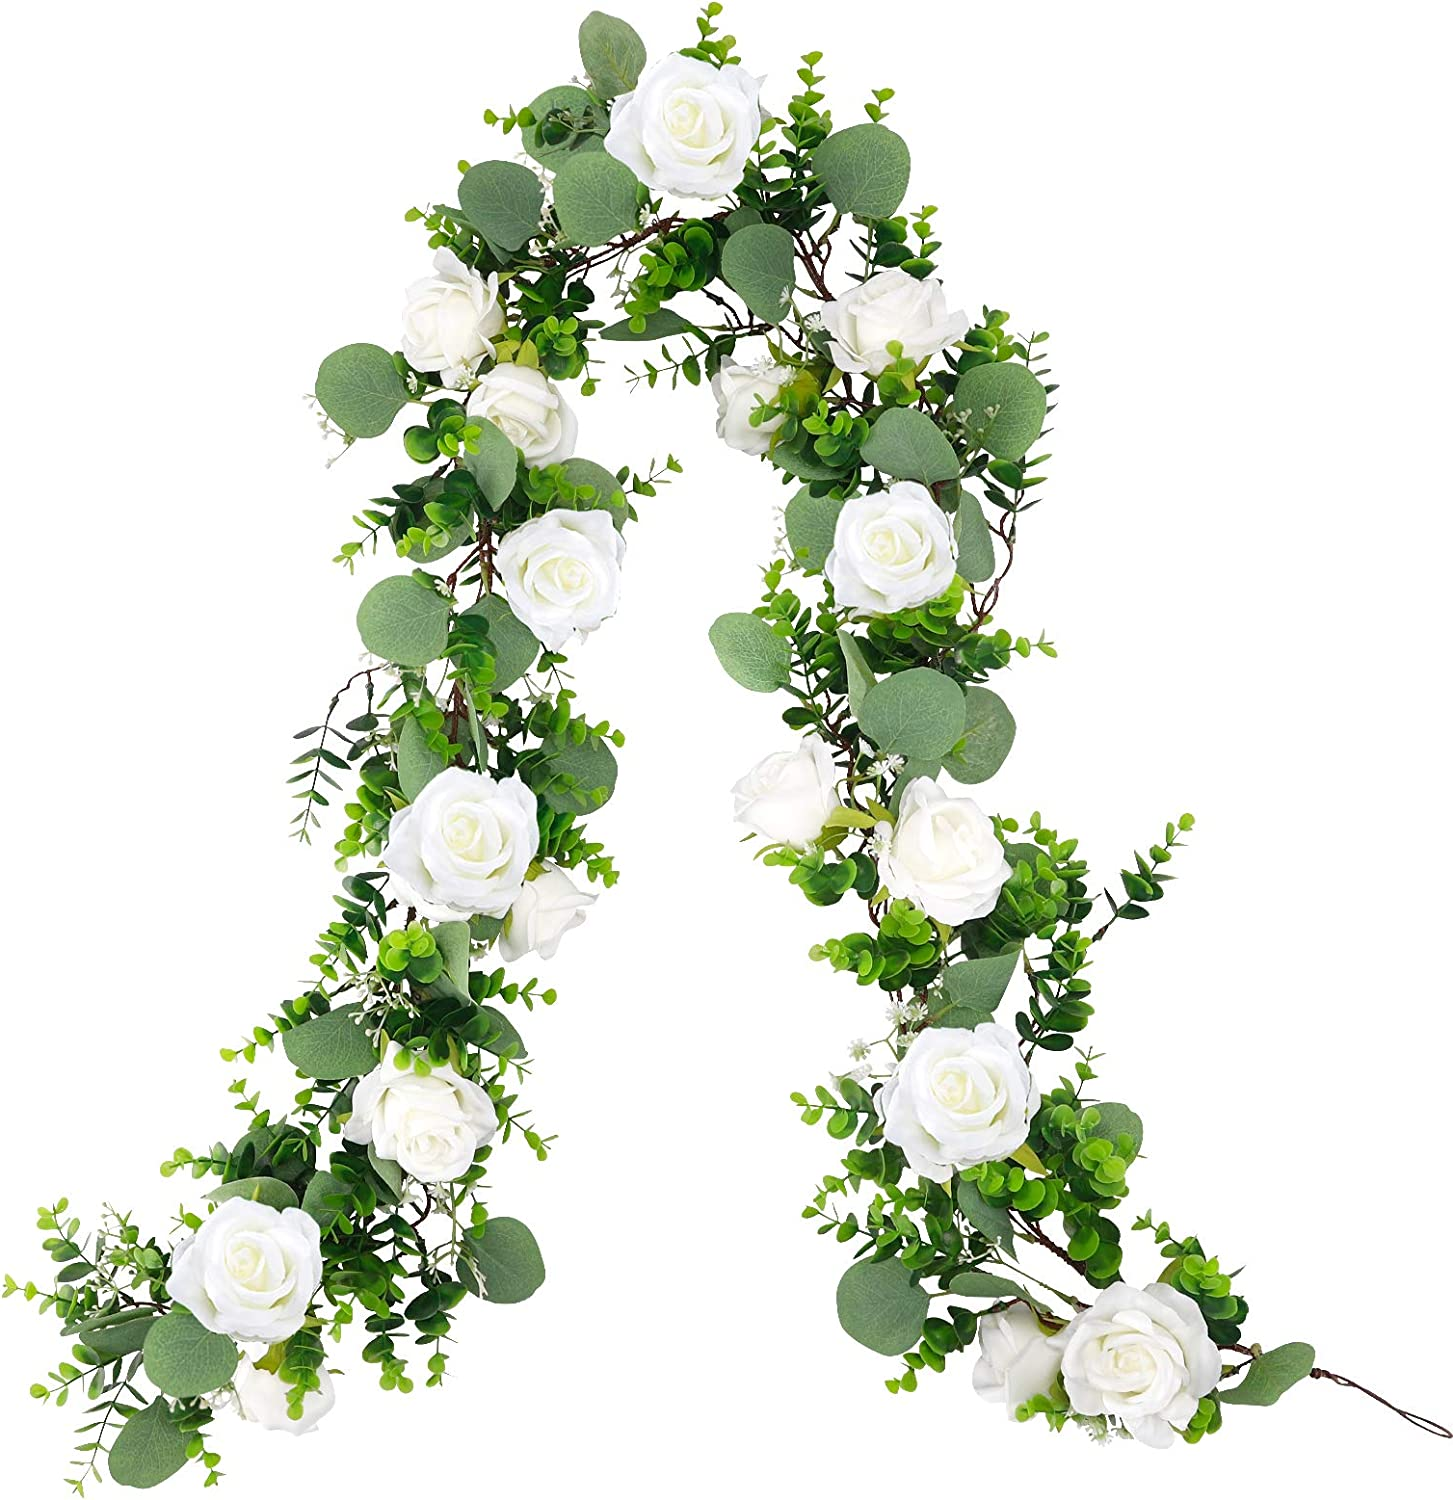 CEWOR 5.9FT Artificial Rose Eucalyptus Garland Faux Greenery Hanging Floral Vines with 17 Flowers for Outdoor Wedding Arch Garden Background Wall Decor (White)